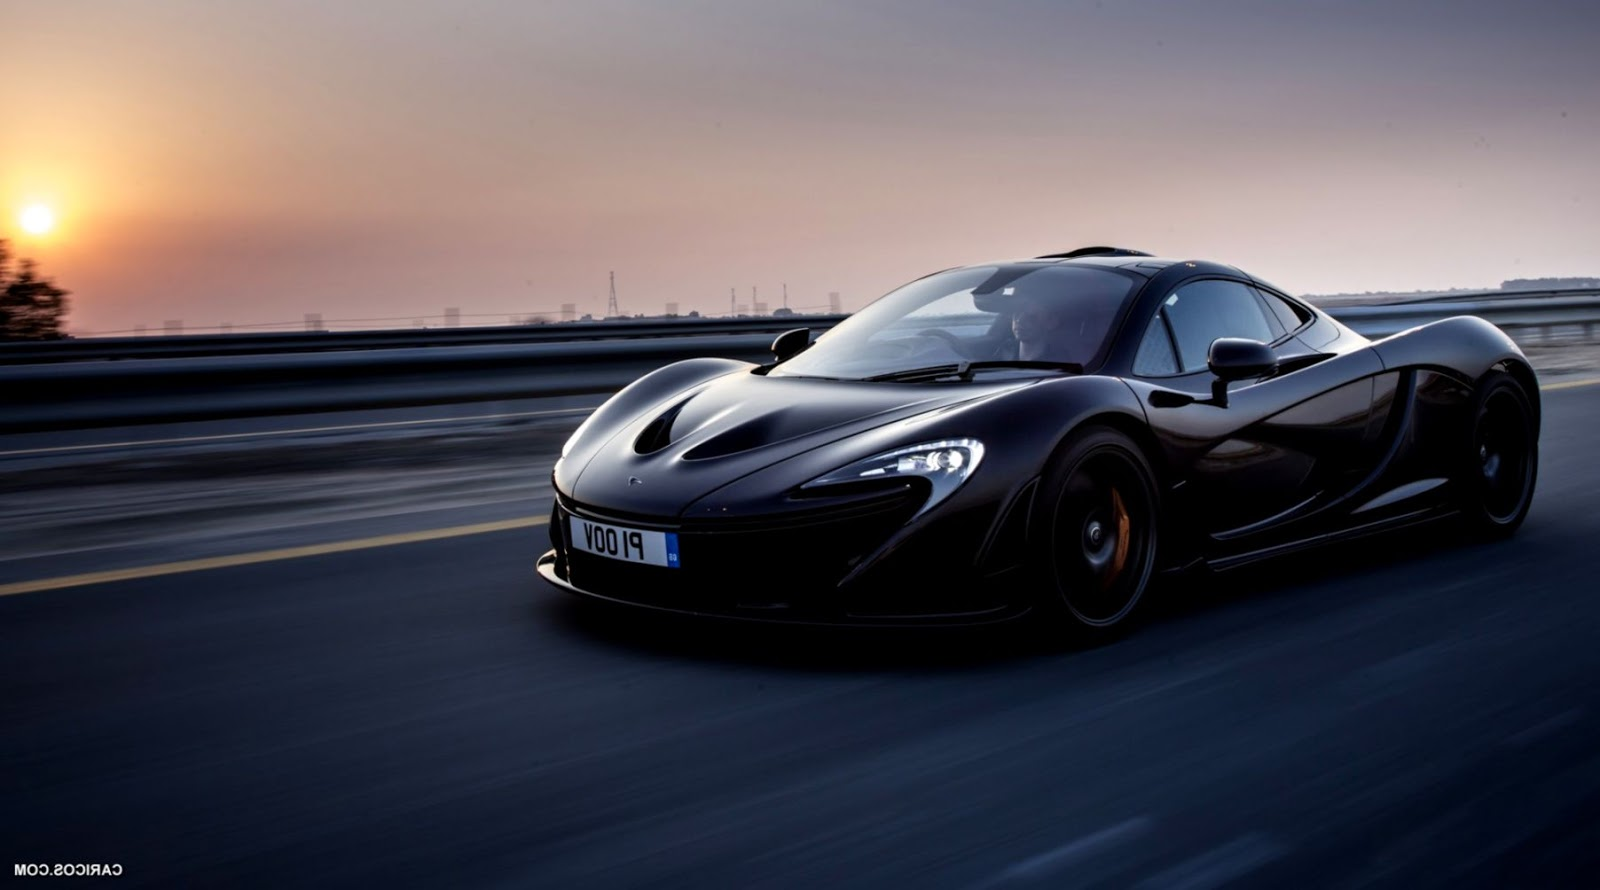 Mclaren P1 Supercar Hd Wallpaper Favourite Wallpapers